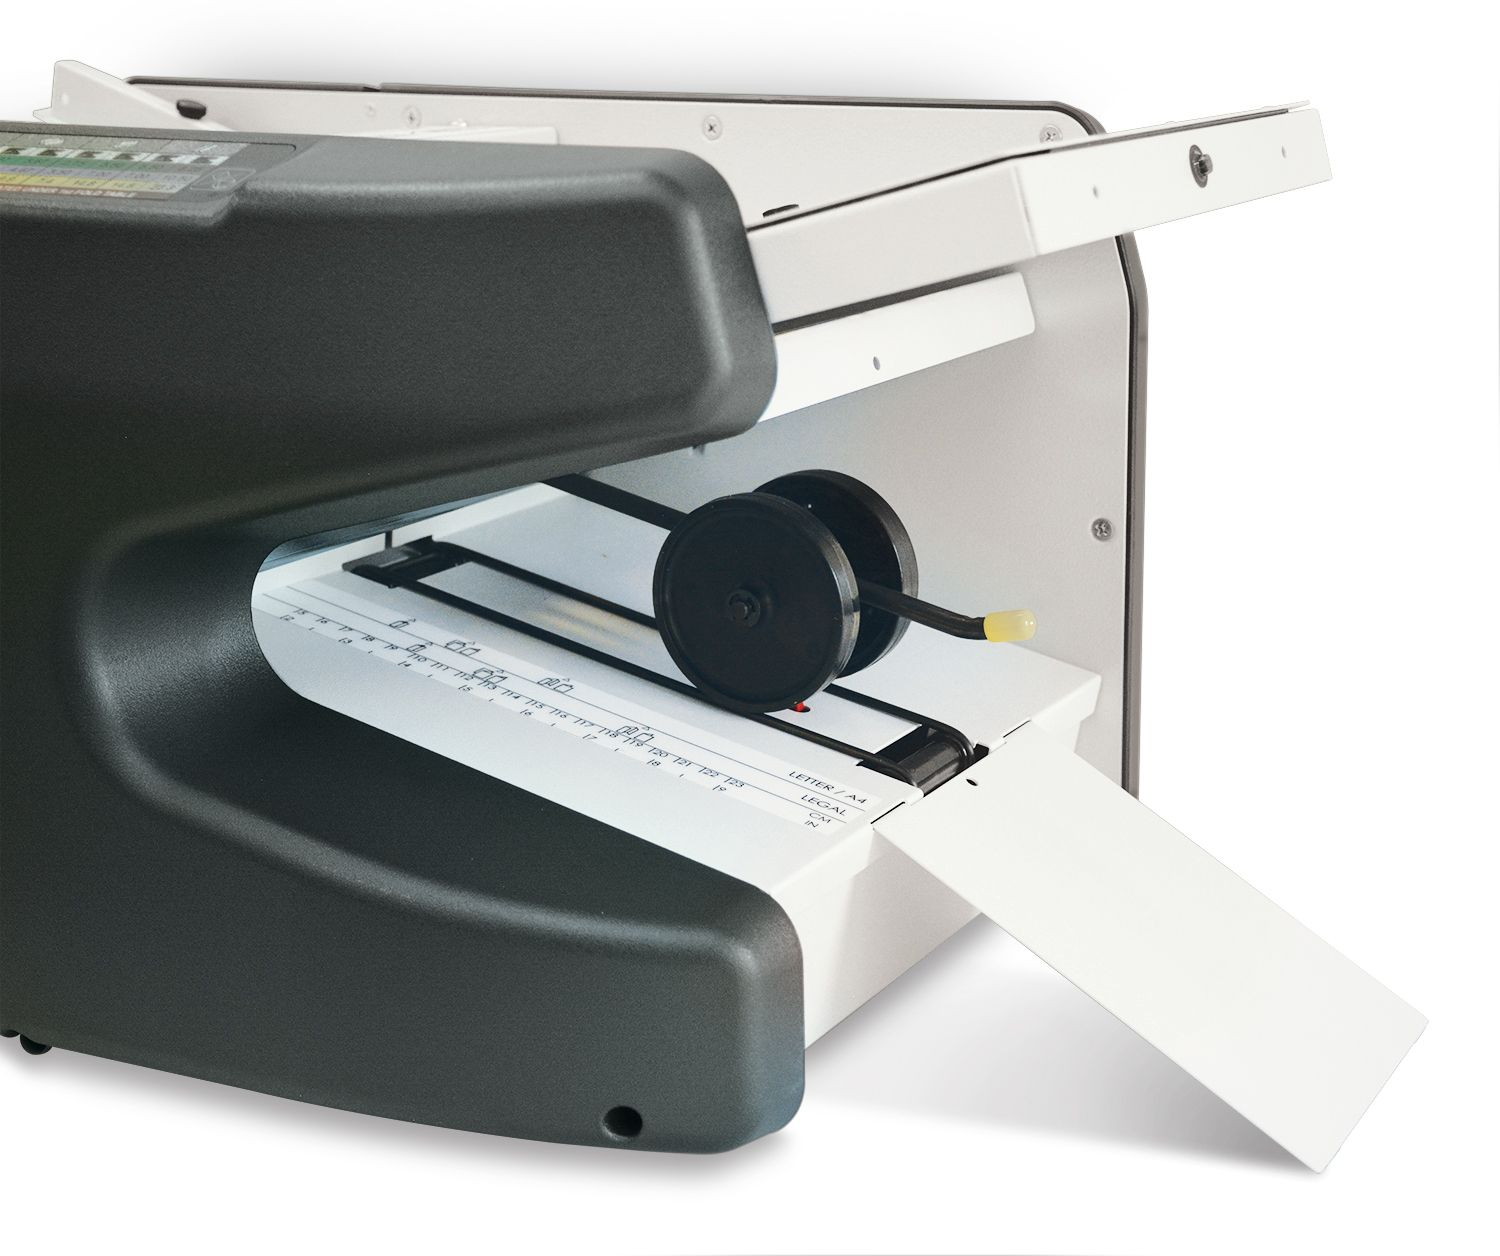 Martin Yale 1611 Ease-of-Use AutoFolder